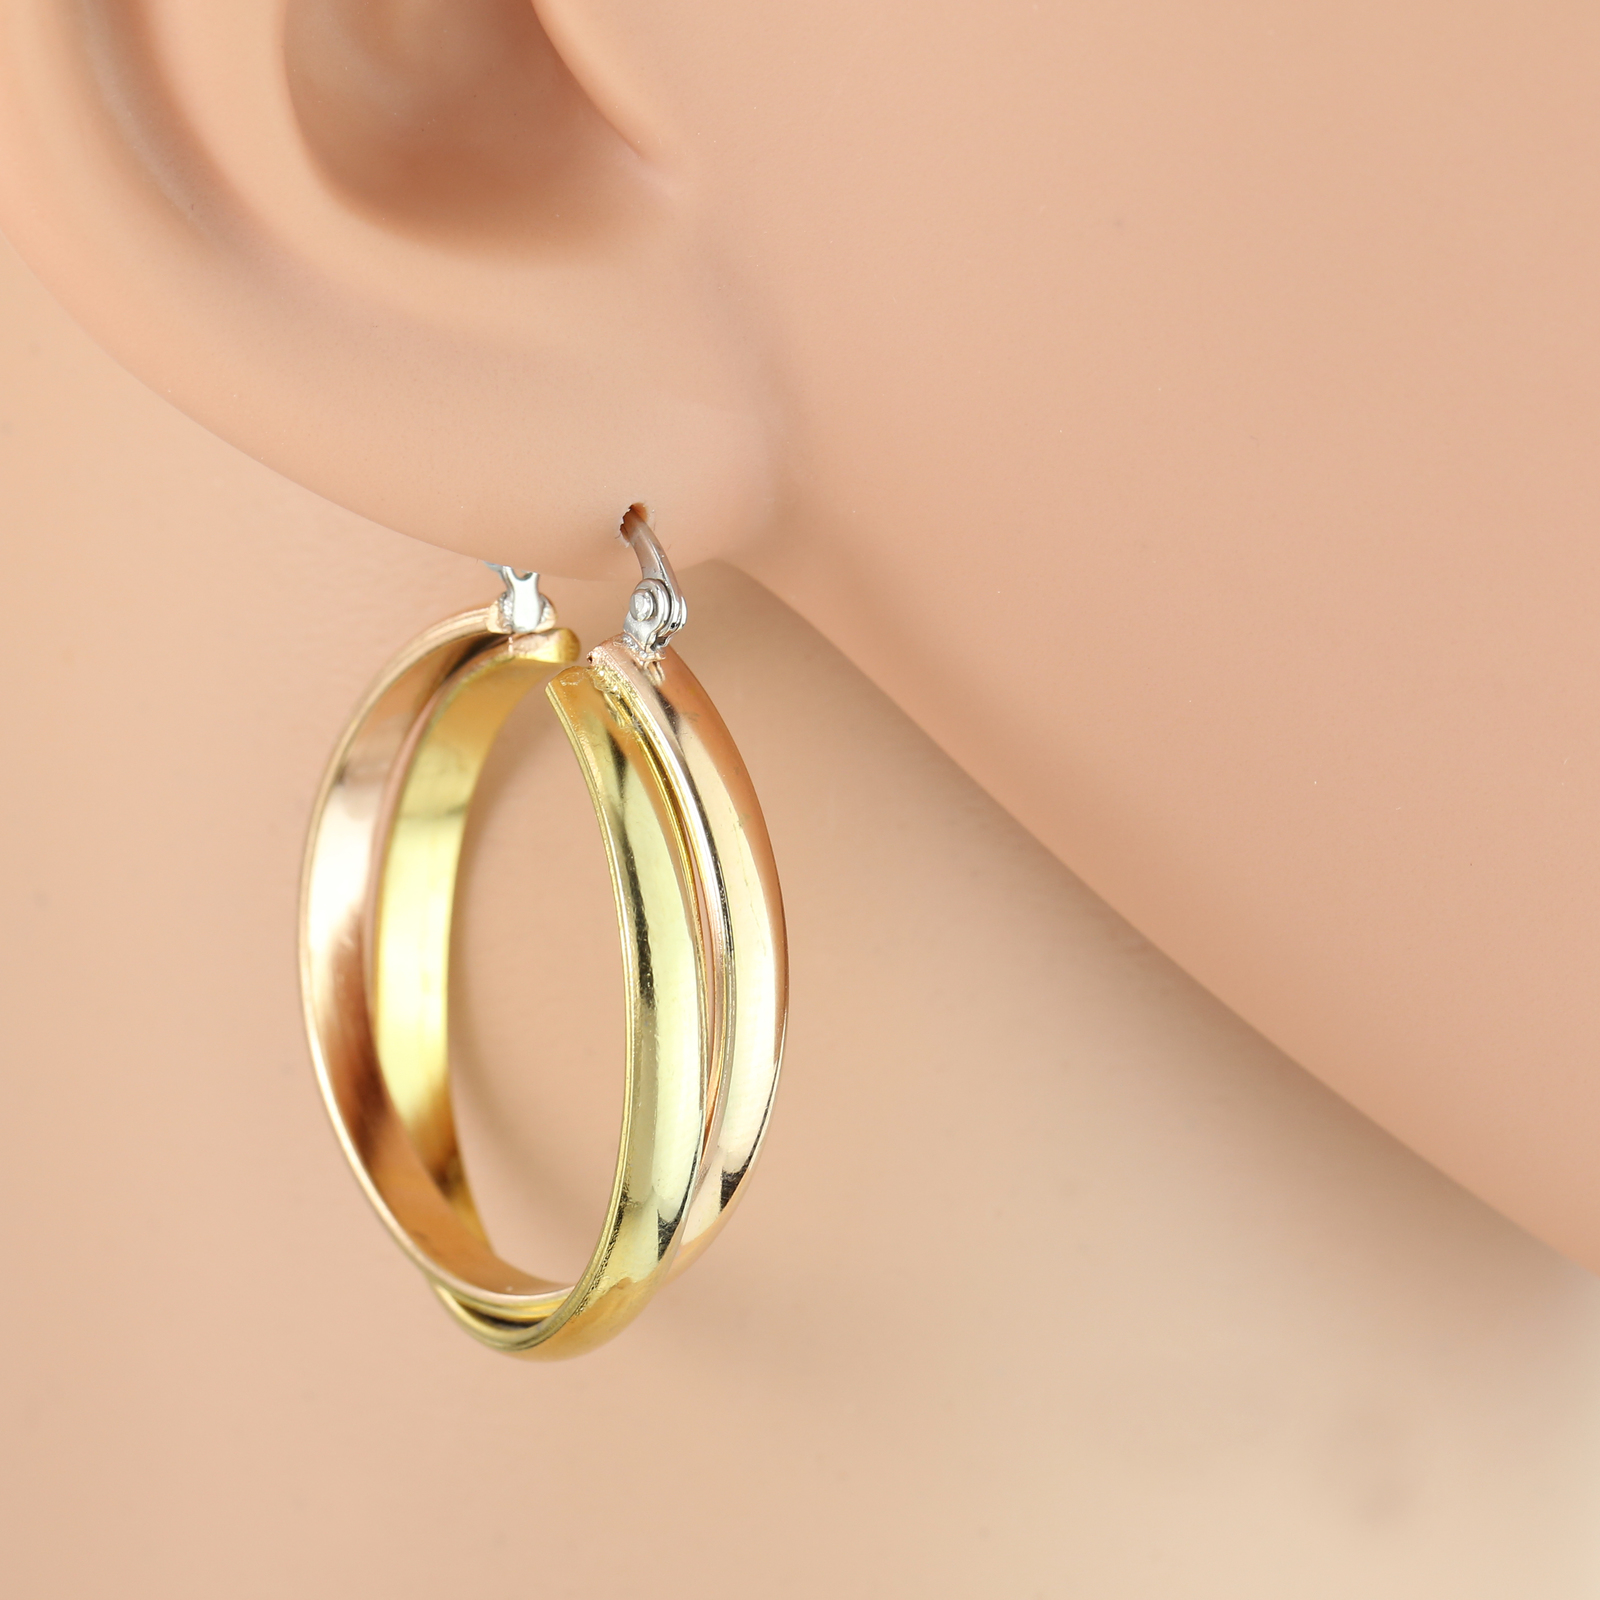 Twisted Rose & Gold Tone (Two-Tone) Polished Hoop Earrings- United Elegance